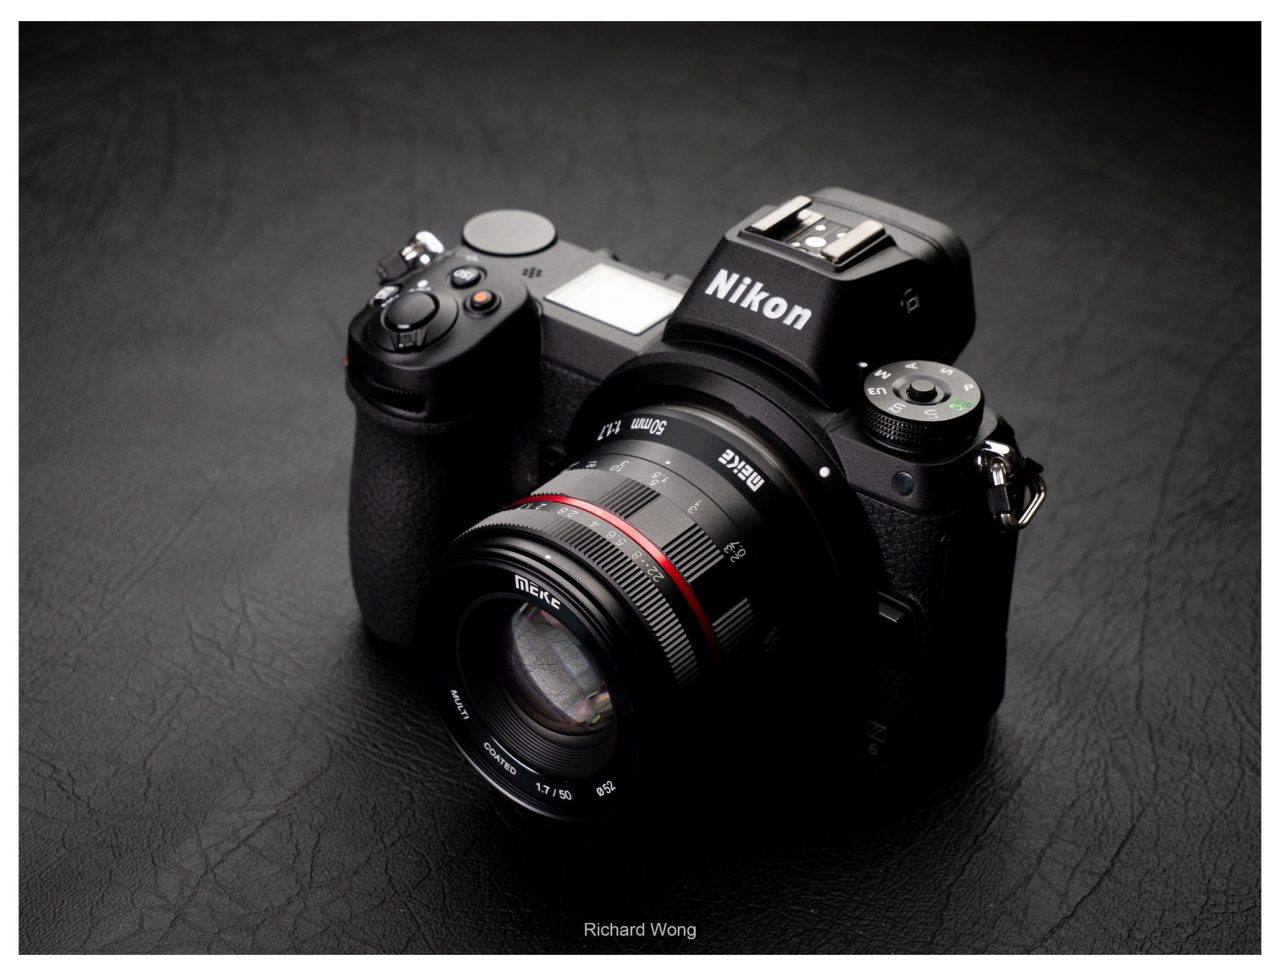 Meike 50mm f/1 7 lens review (Nikon Z mount) – Review By Richard